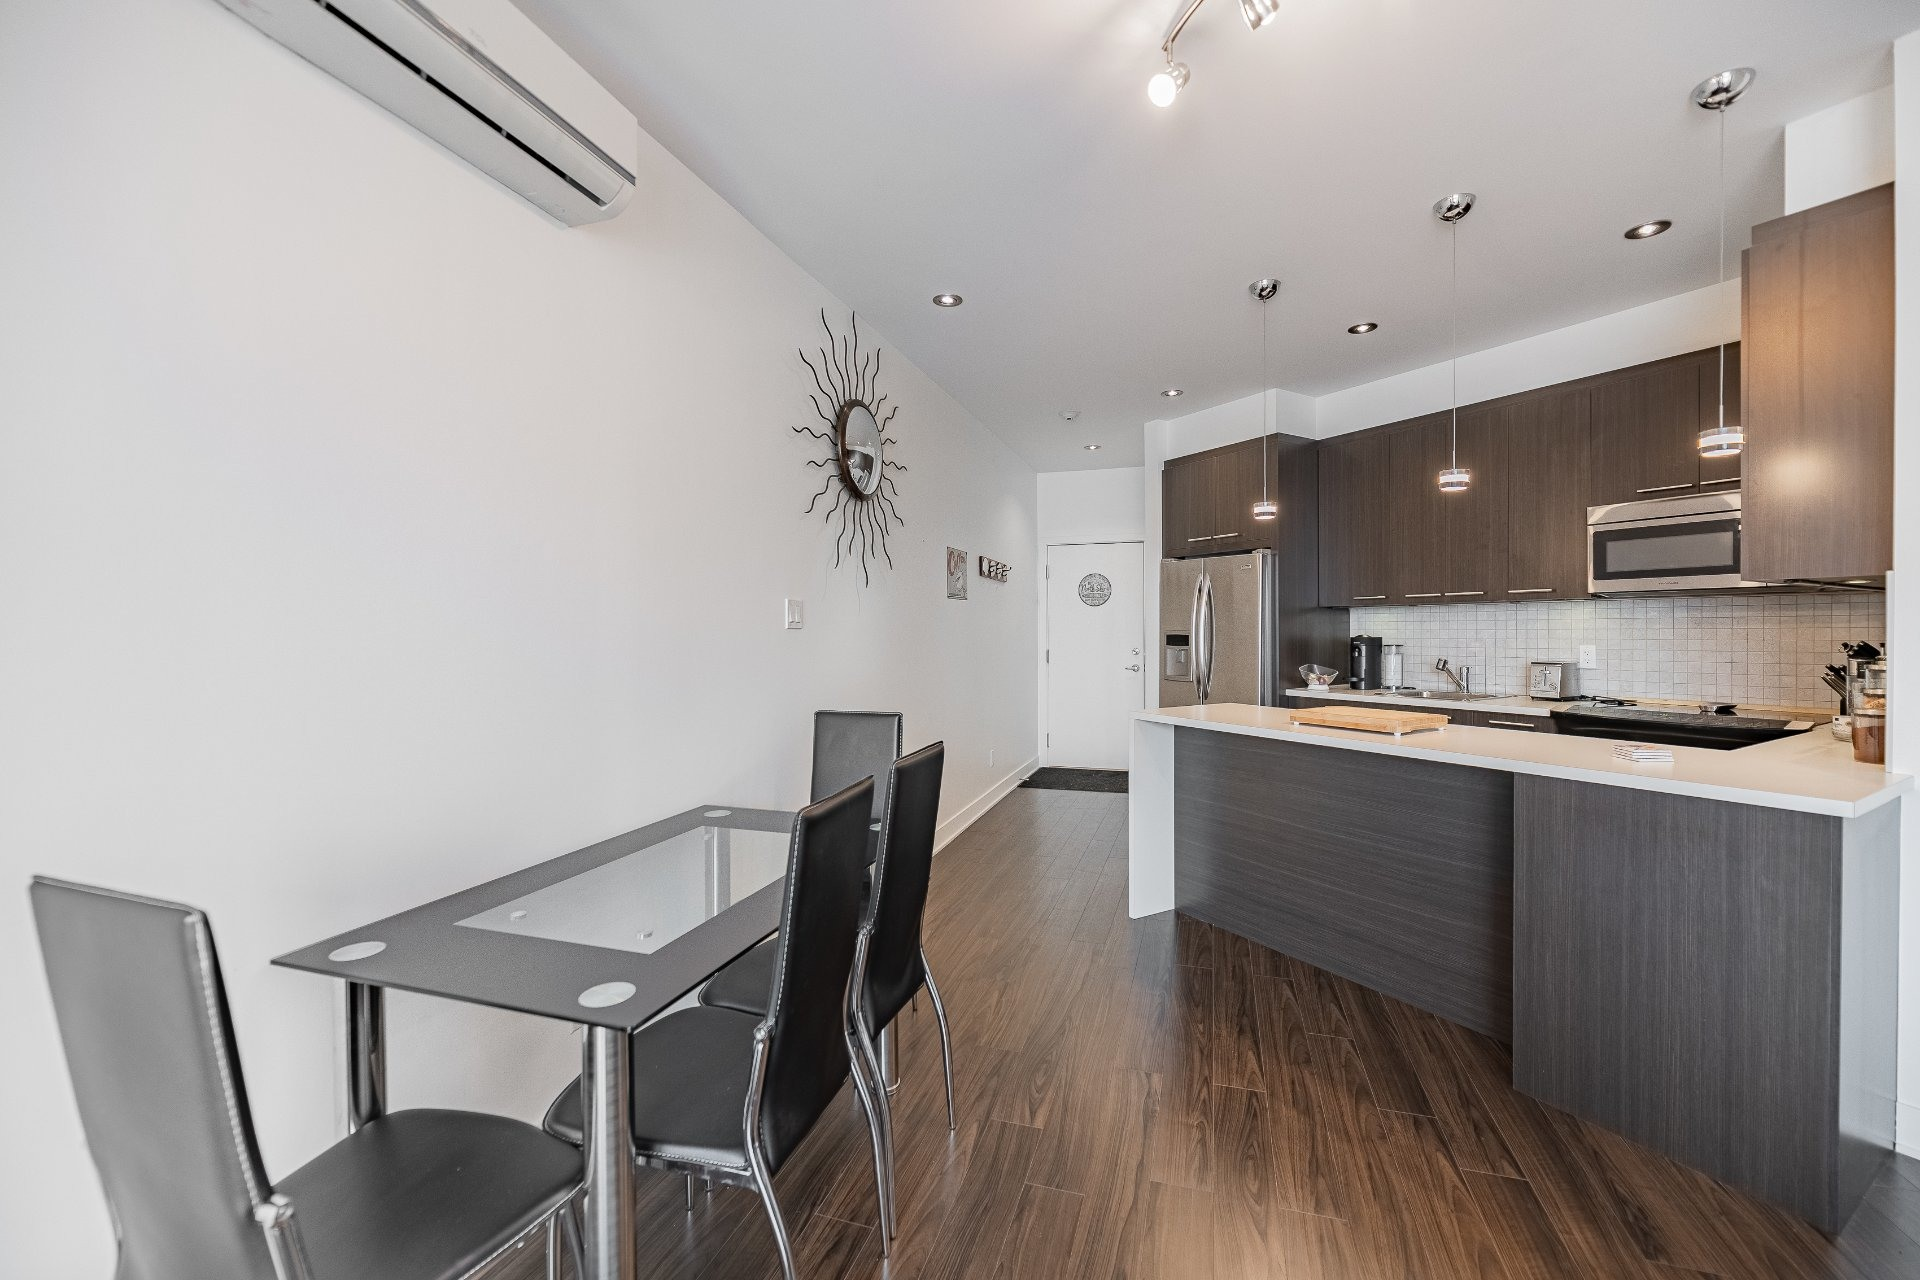 image 7 - Apartment For sale Mercier/Hochelaga-Maisonneuve Montréal  - 5 rooms